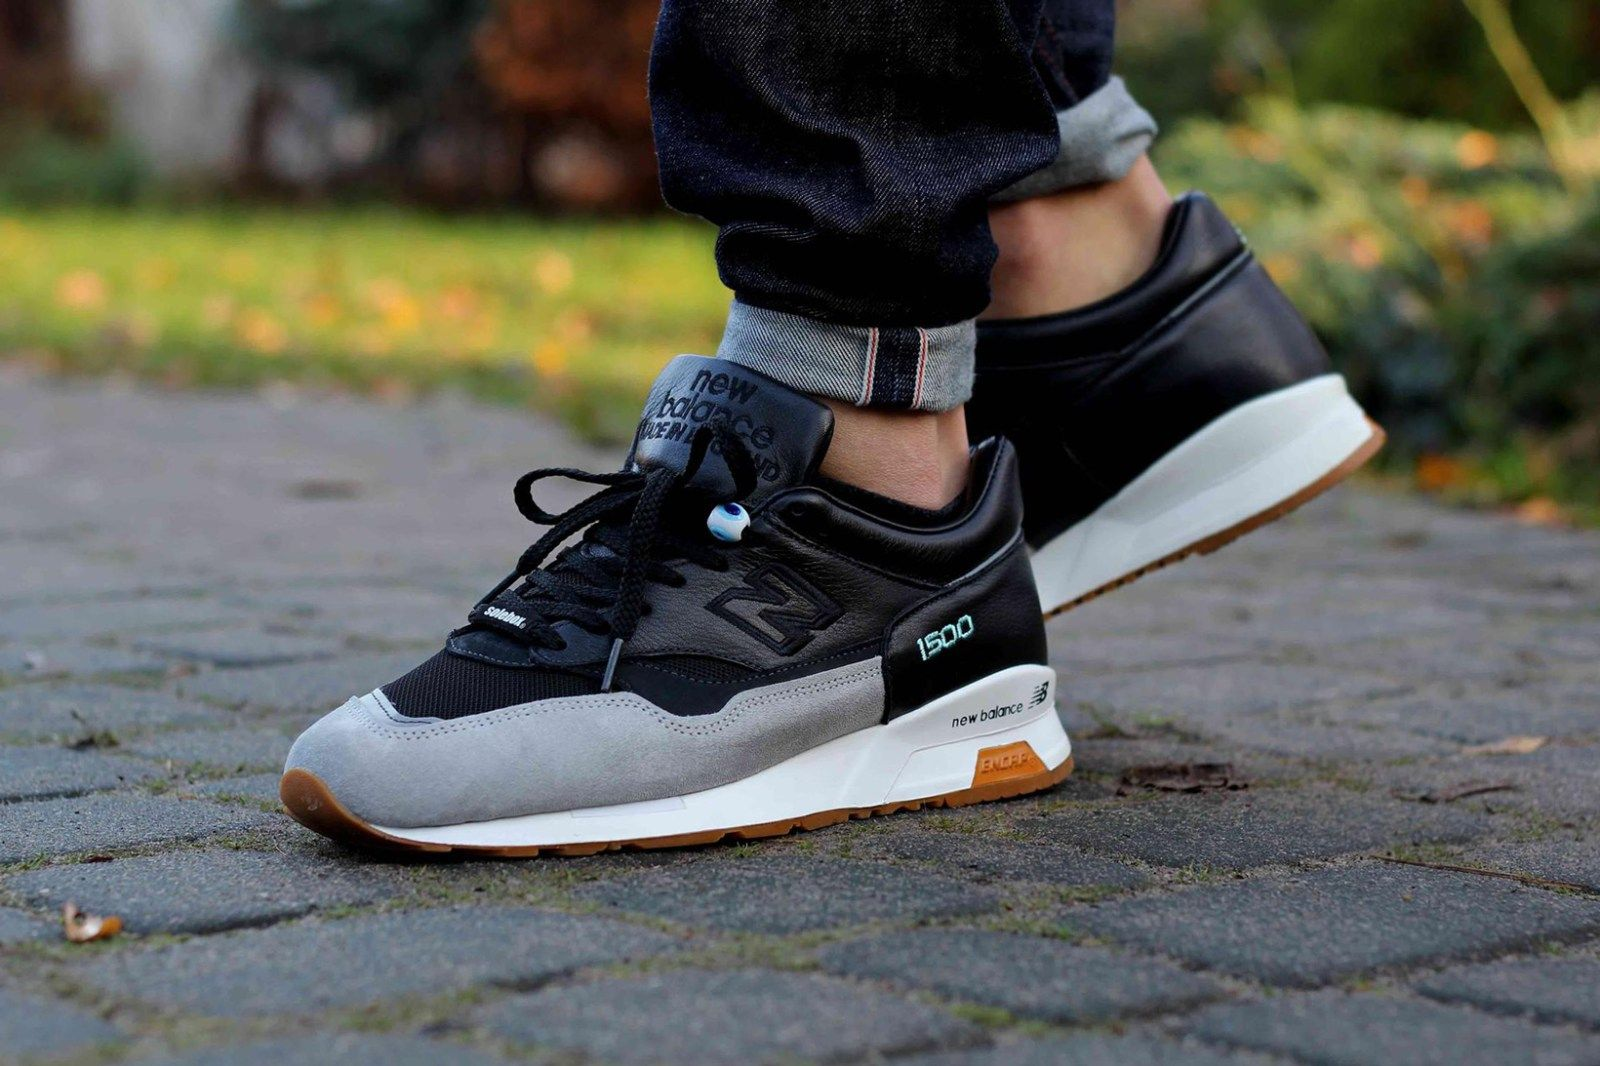 new balance 1500gb nz